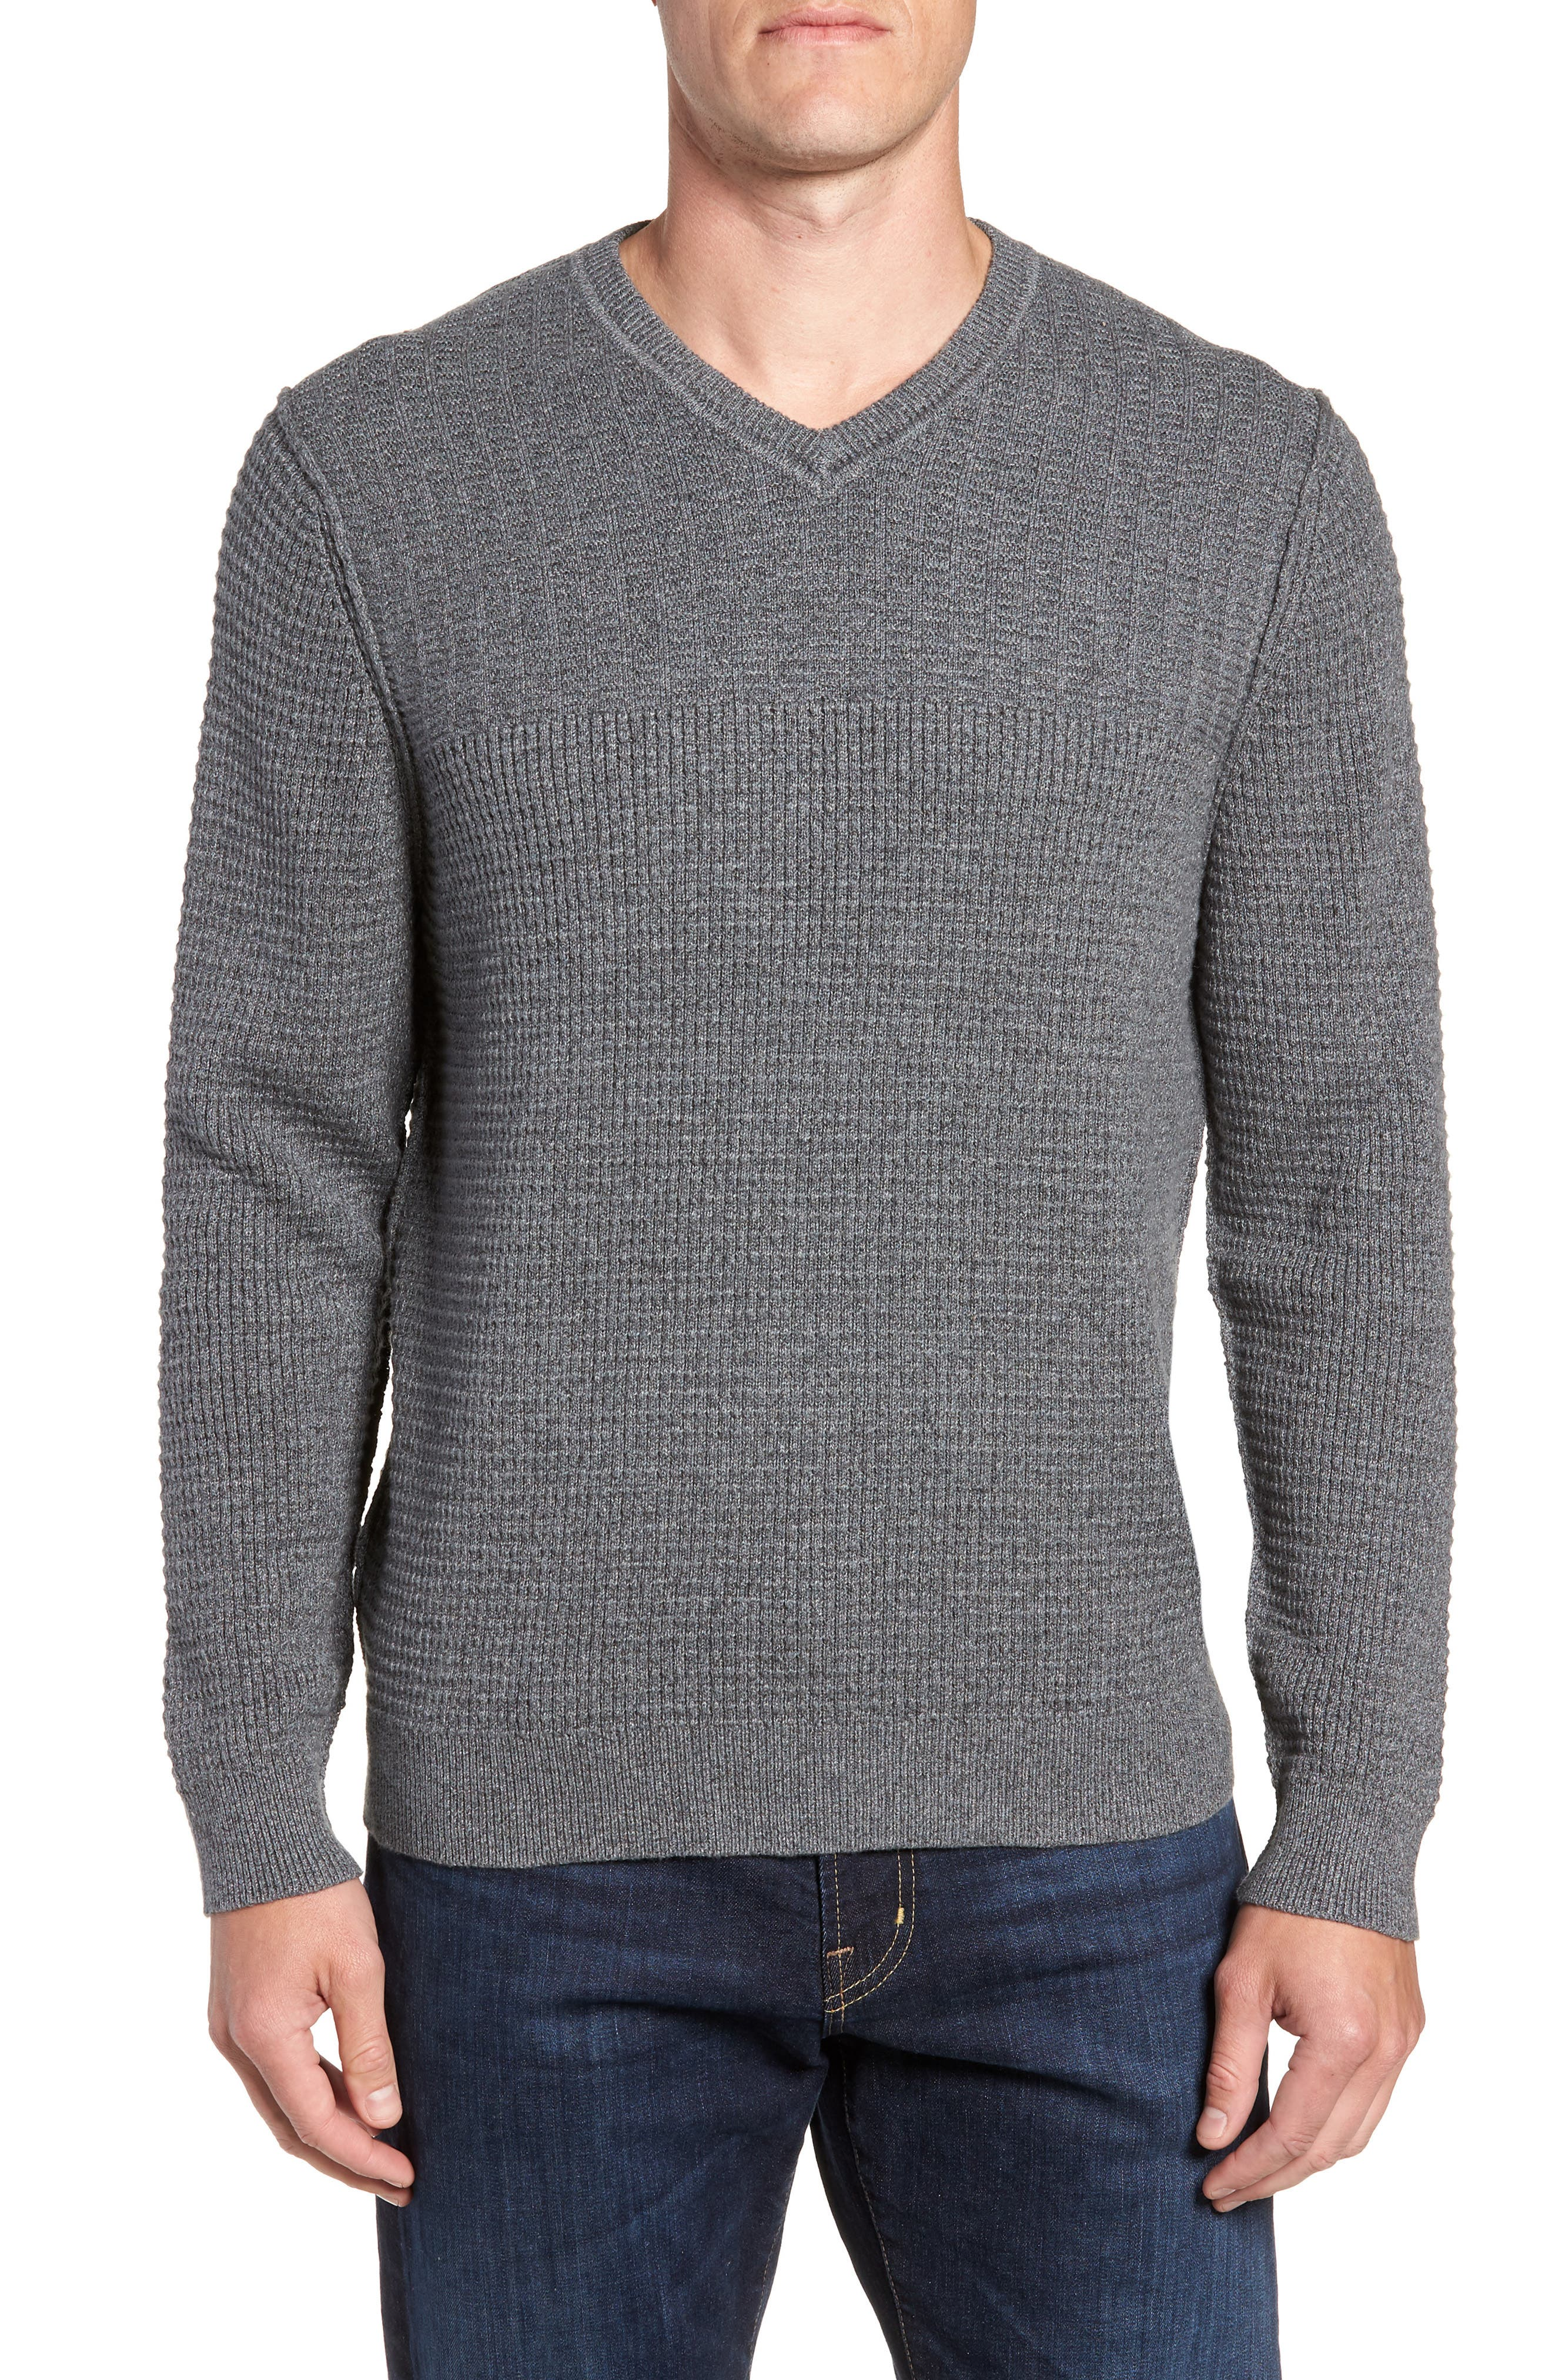 TOMMY BAHAMA, Isidro V-Neck Regular Fit Sweater, Main thumbnail 1, color, CAVE